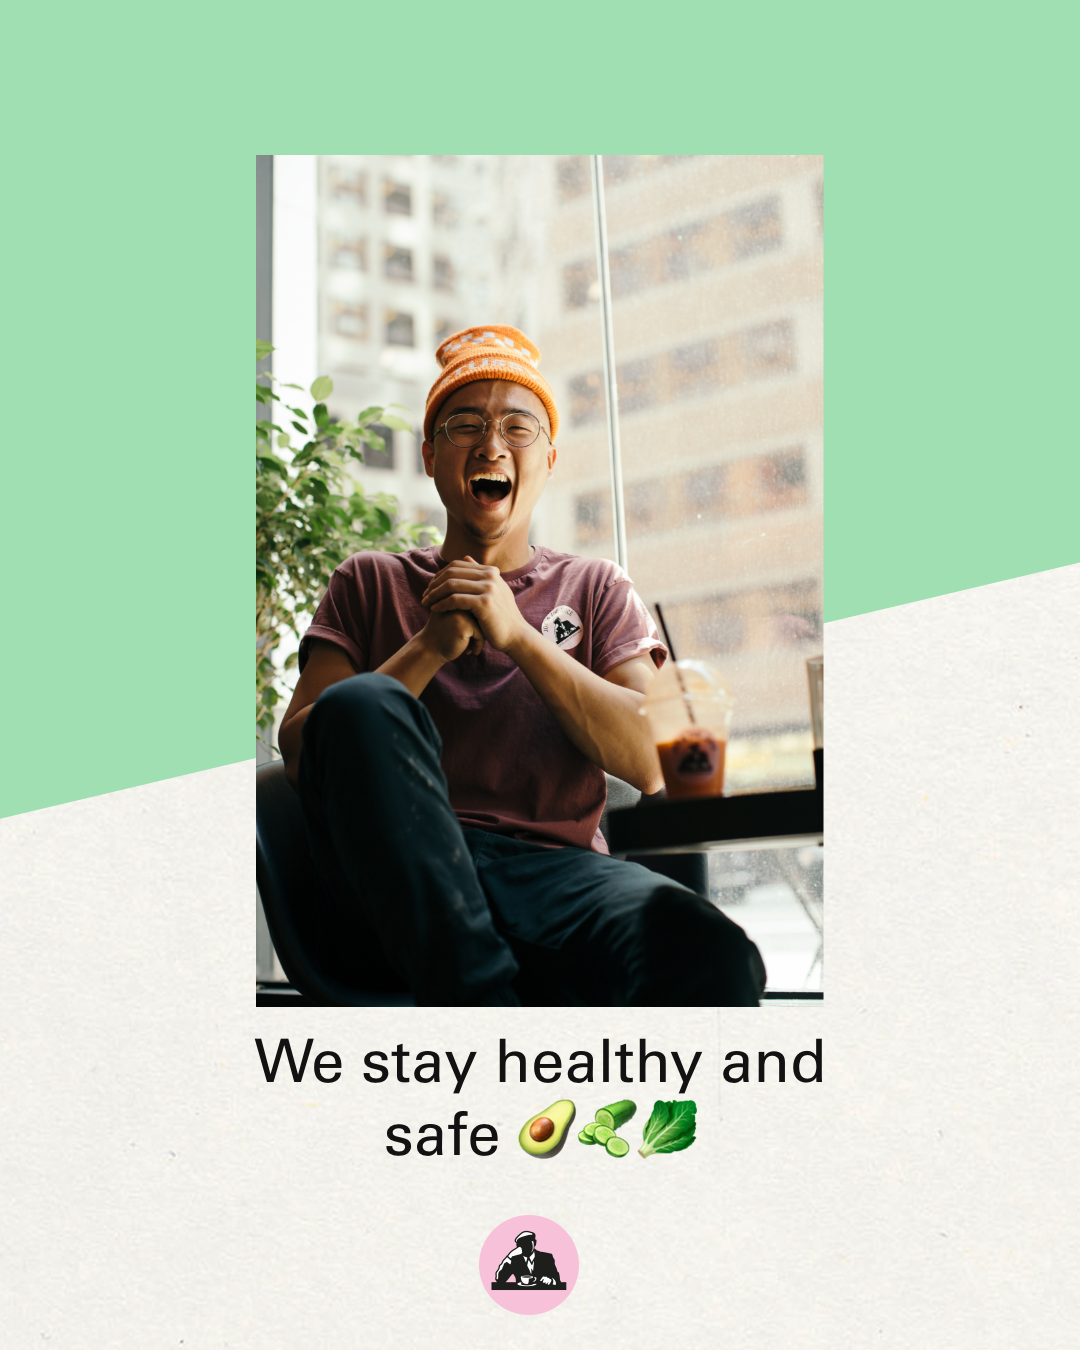 We stay healthy and safe